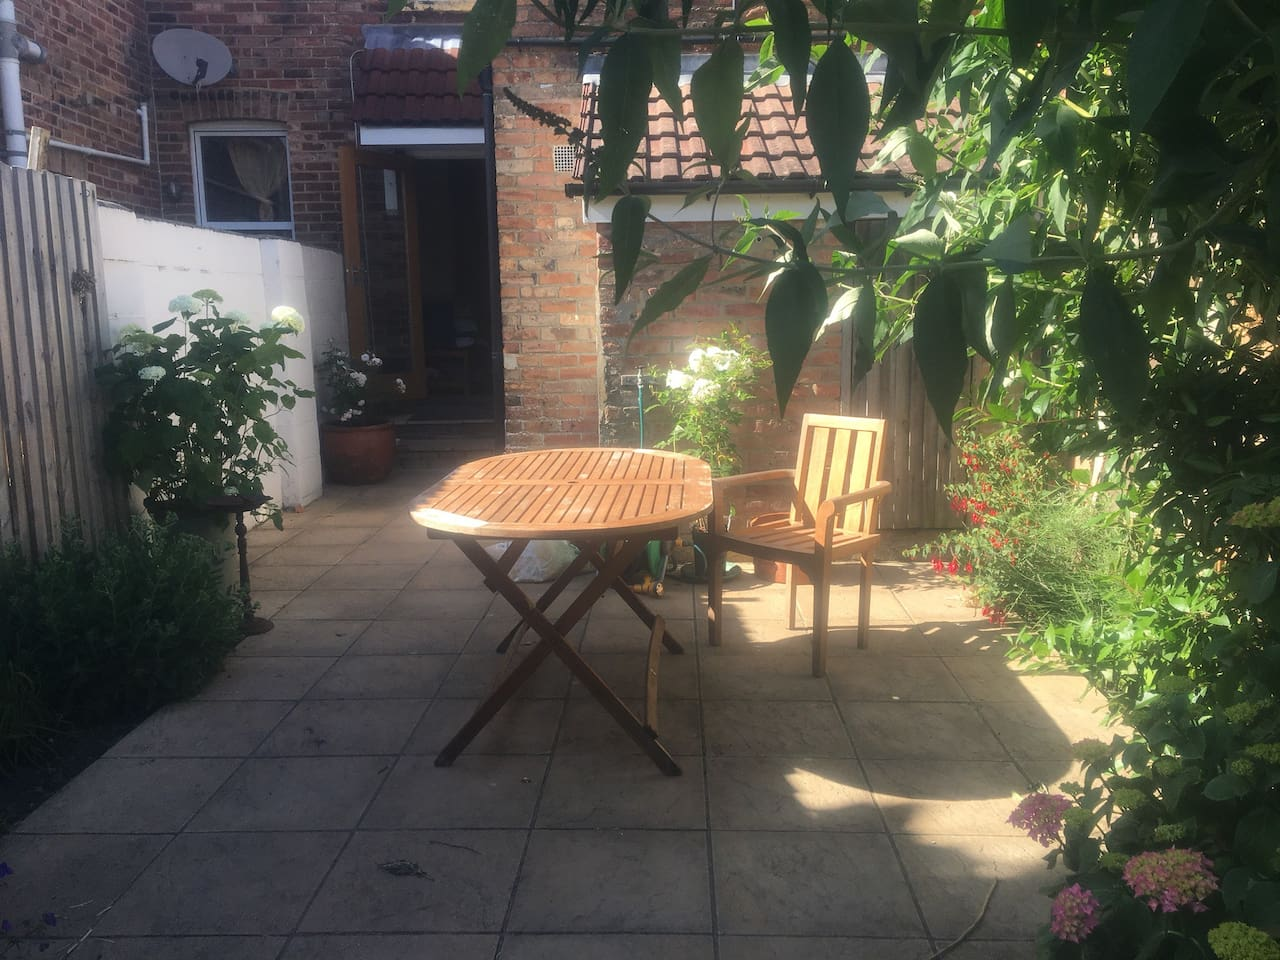 Back garden seating area (there are more chairs!)